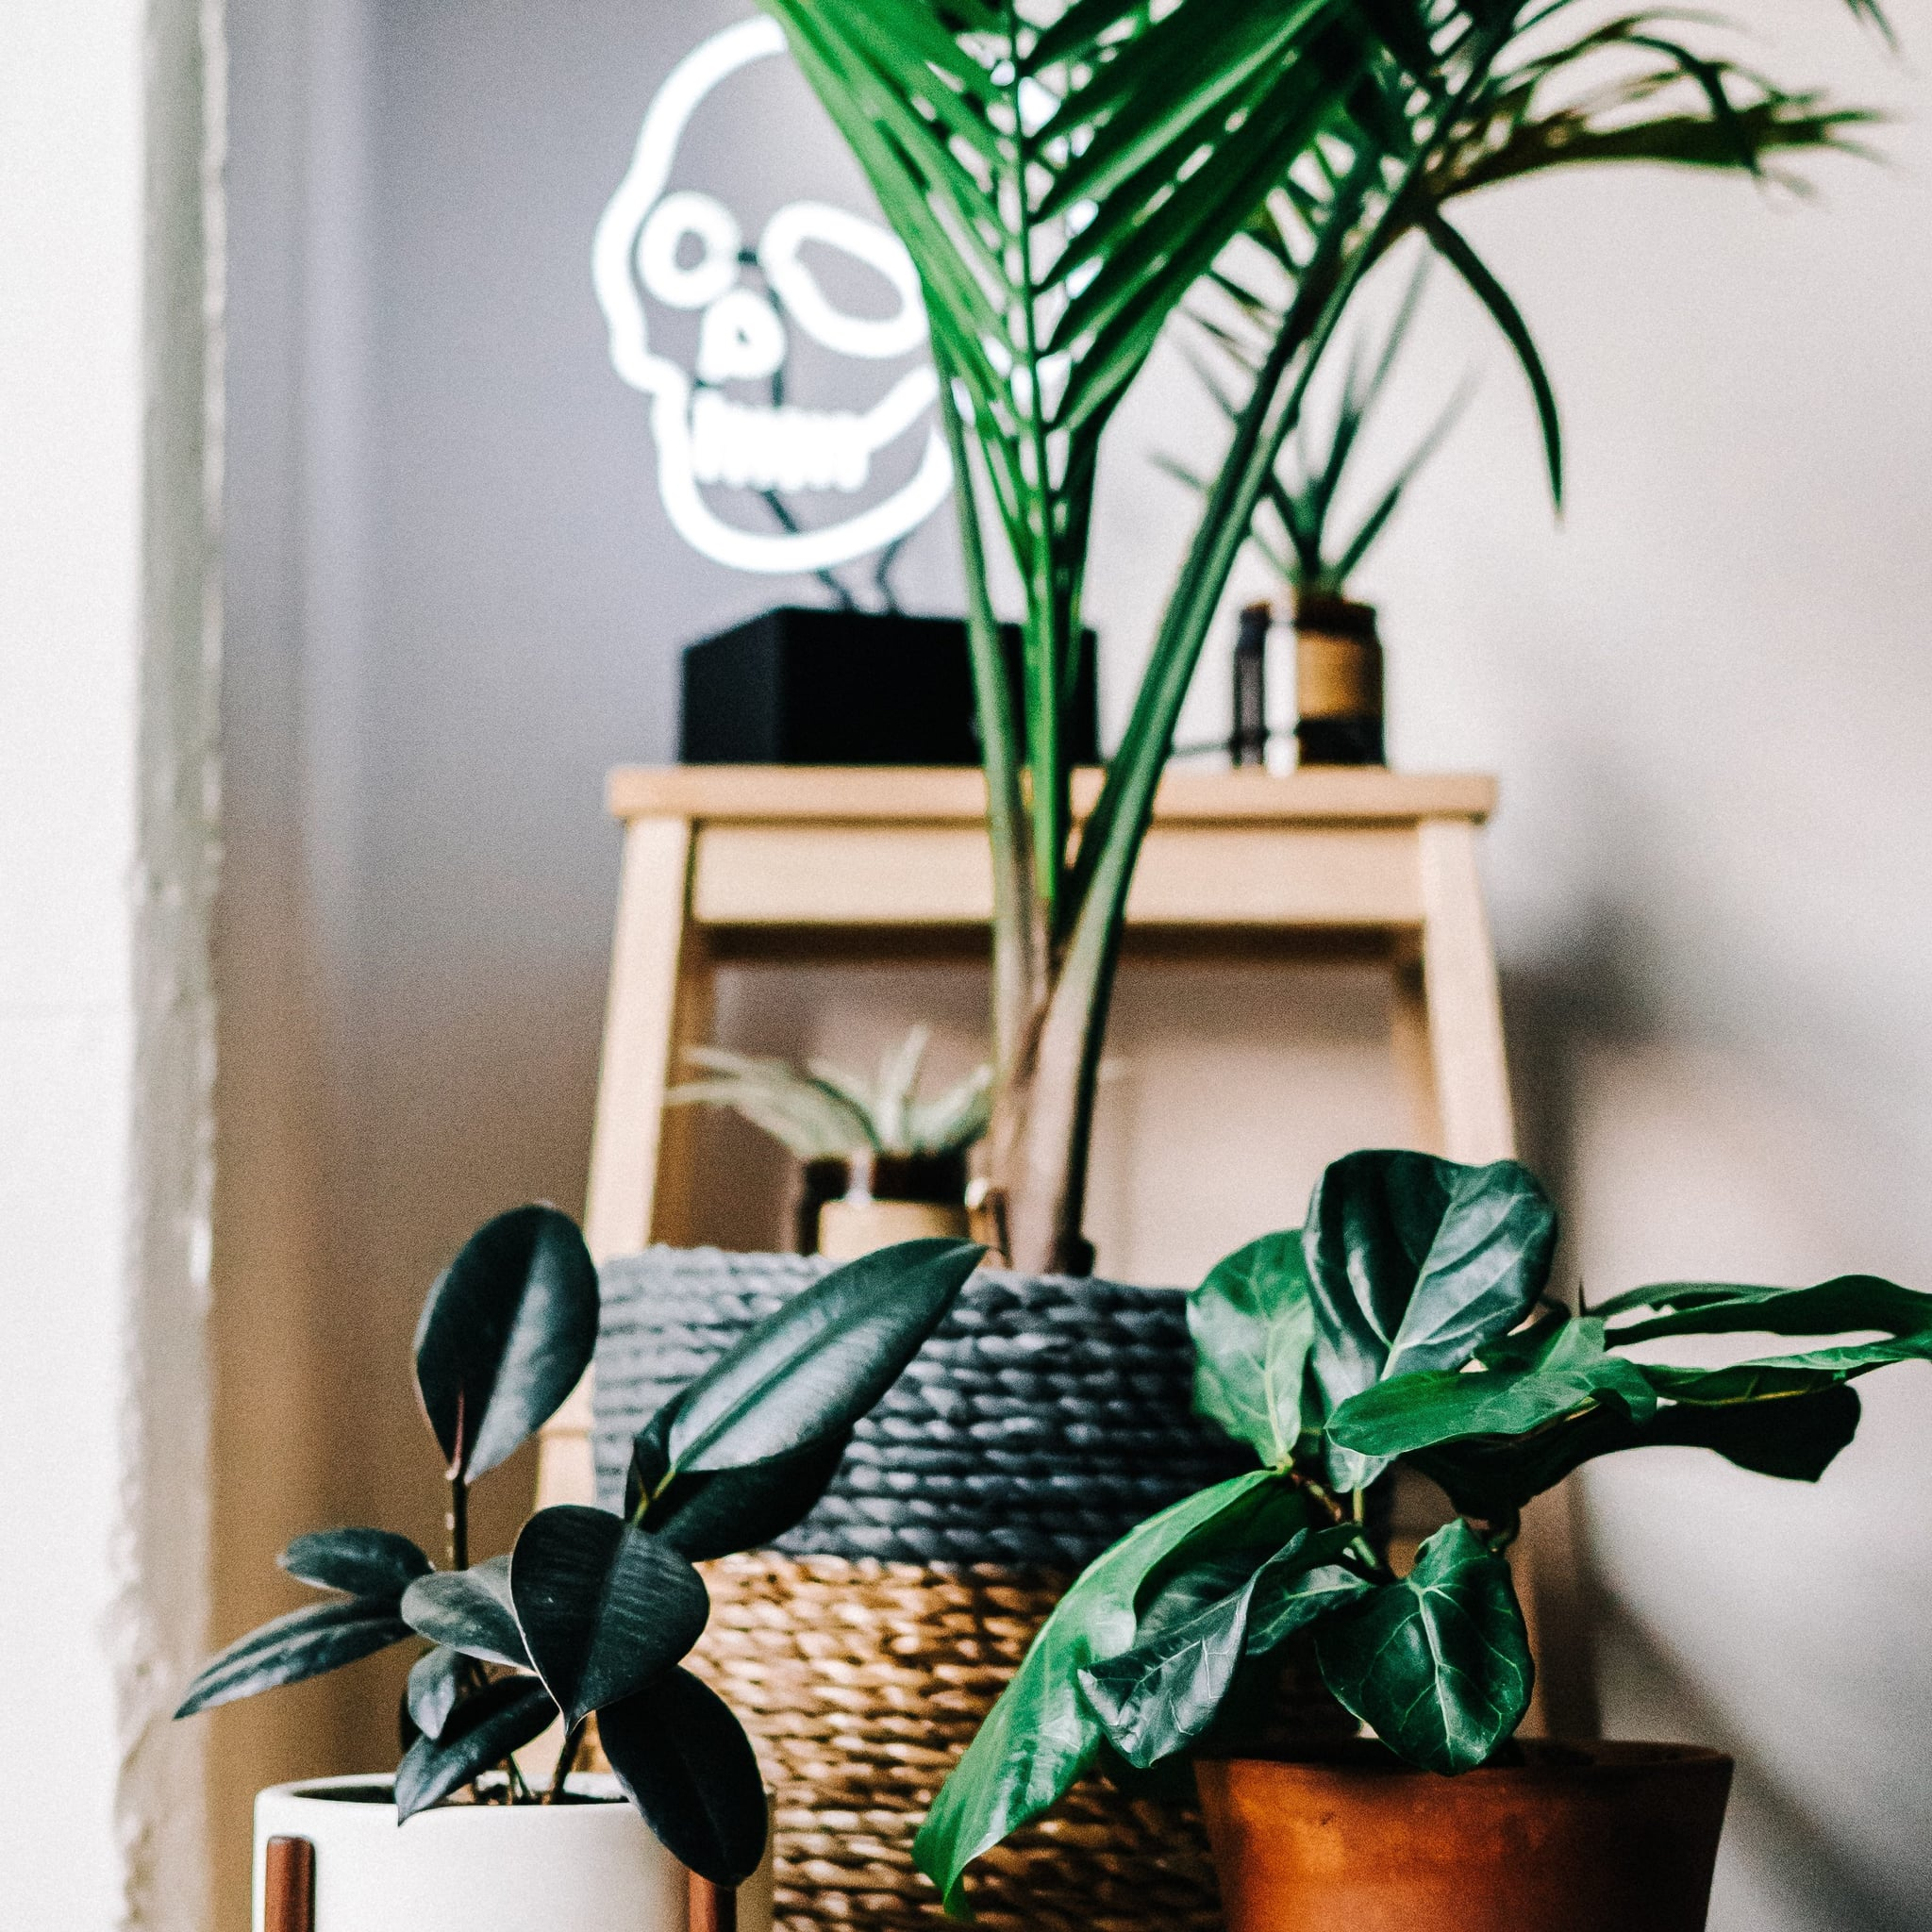 Best Houseplants For Air Quality | POPSUGAR Home on spices names, grass names, berries names, wildflowers names, veggies names, plants names, pets names, design names, garden names, cacti names, photography names, nuts names, furniture names, weather names, insects names, ornamental grasses names, herbs names, leaves names, lawn care names, pottery names,